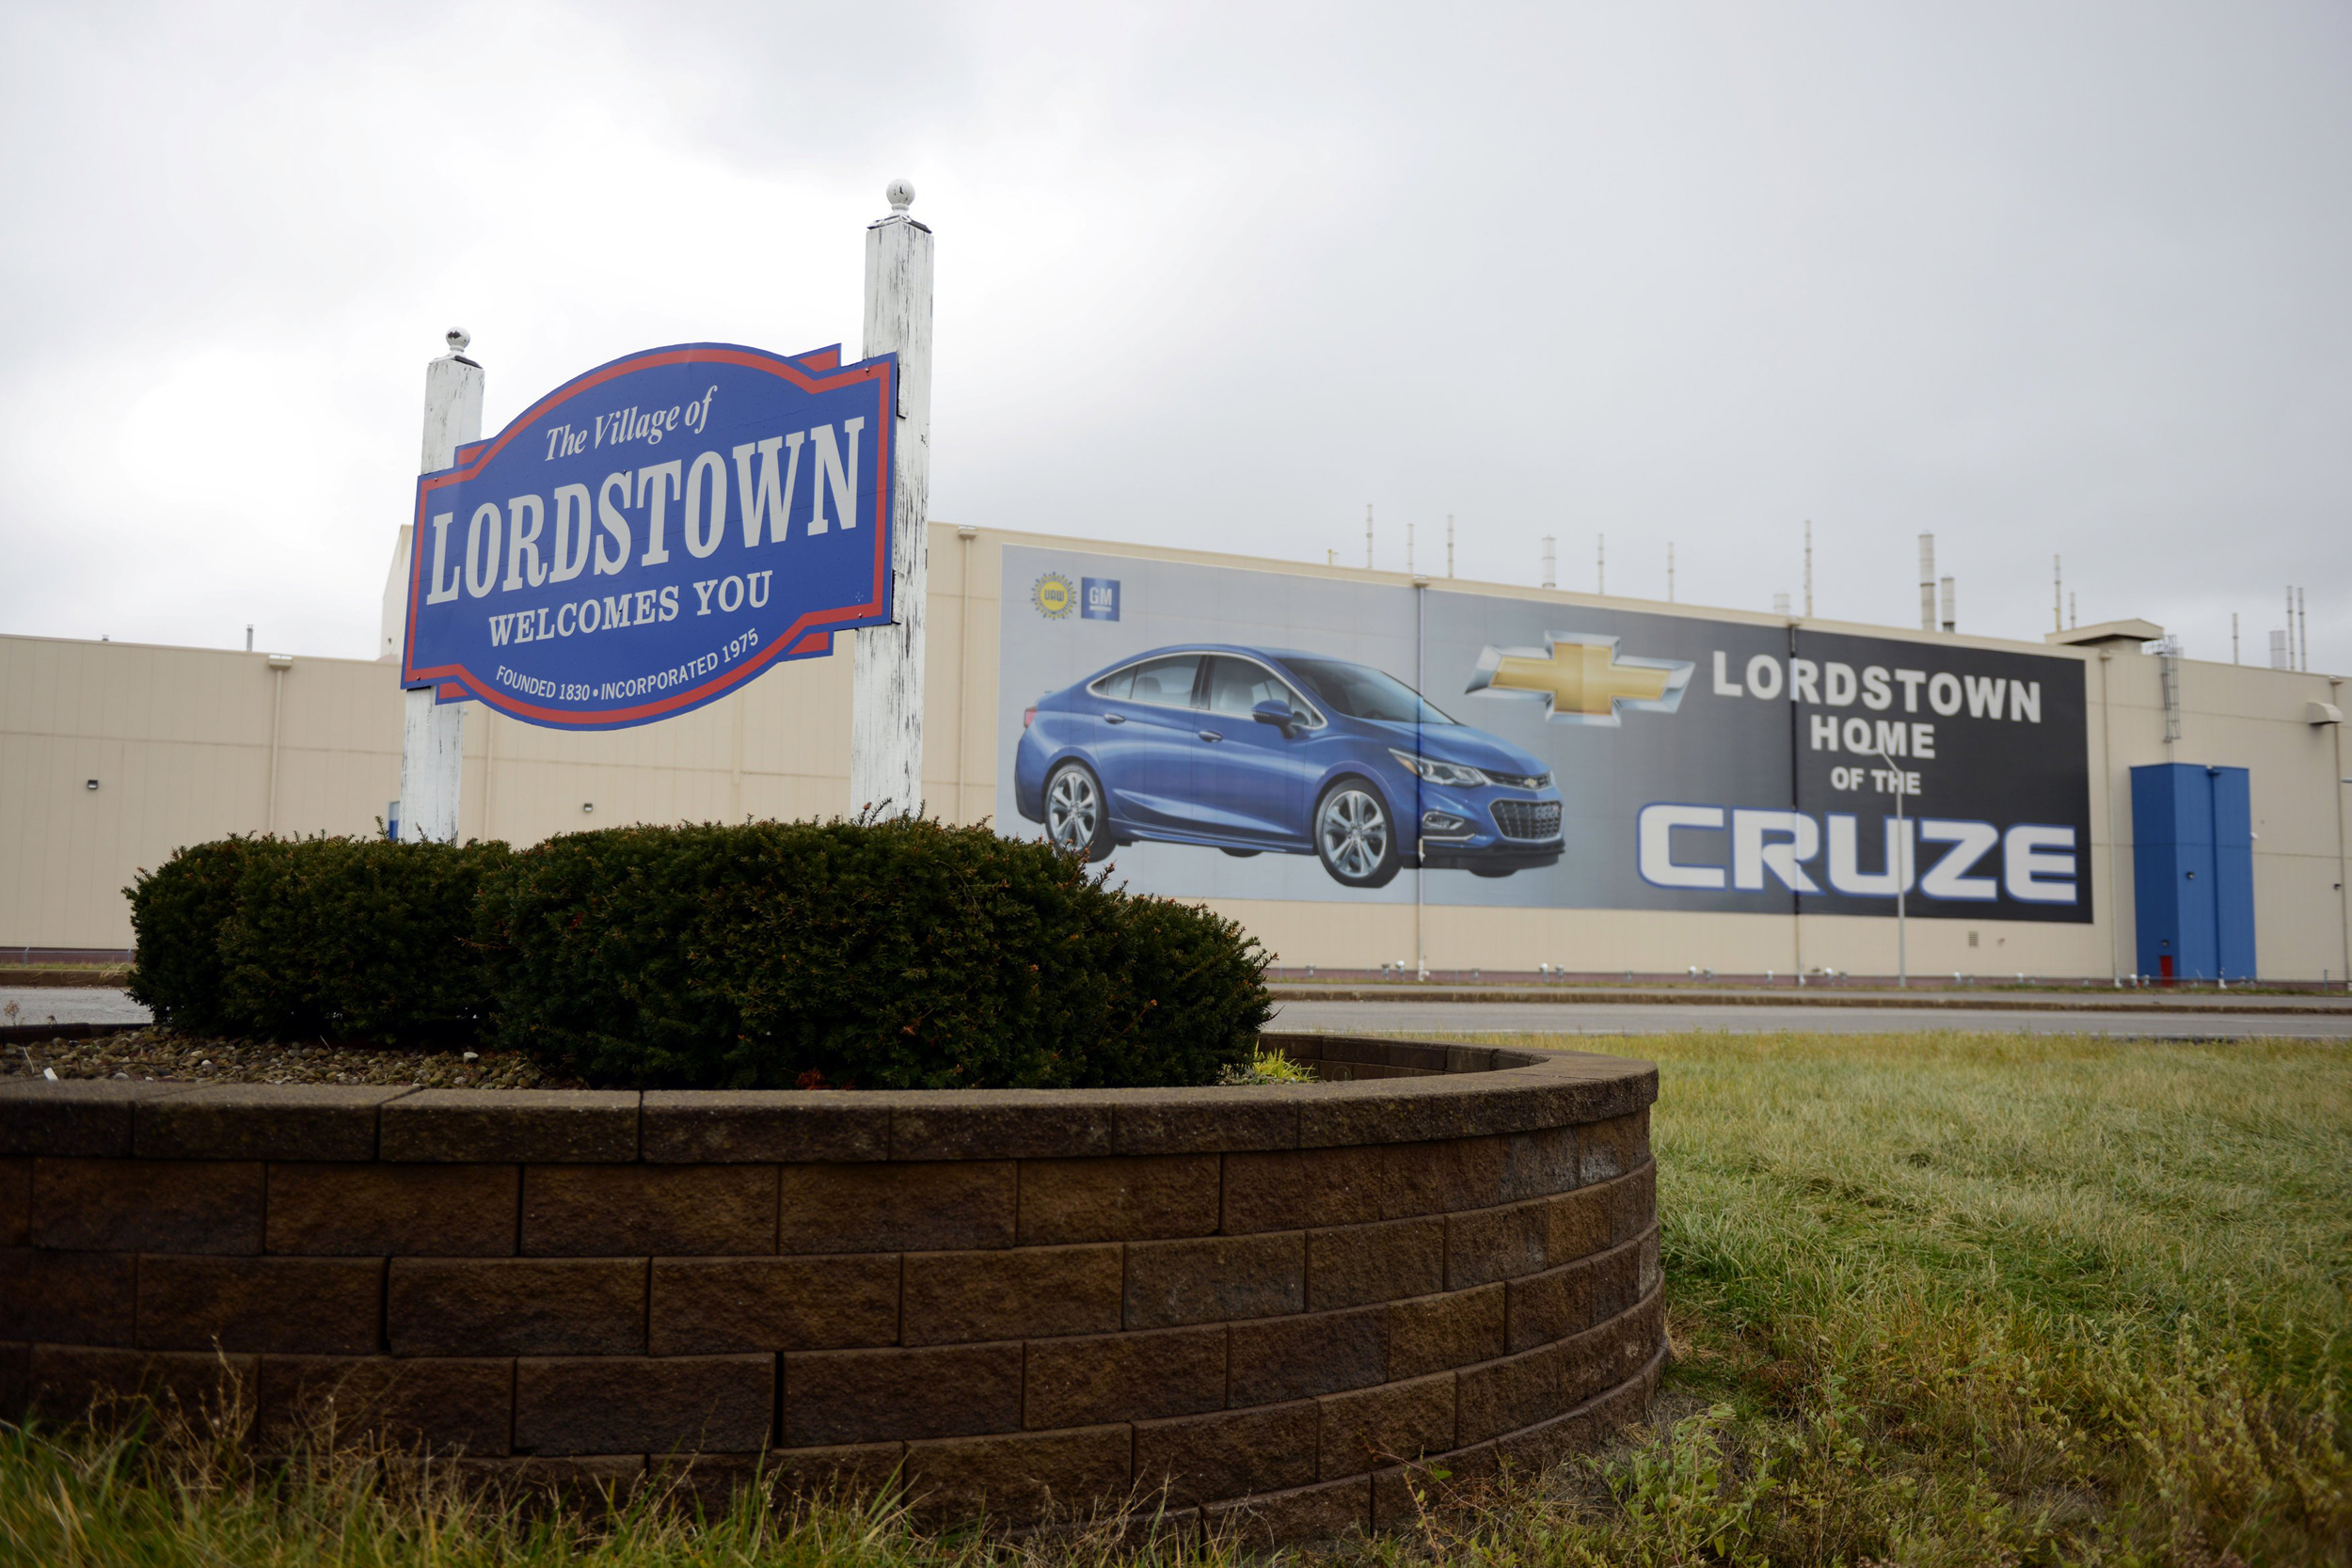 Ross Barkan: General Motors, Sears and Toys R Us: Layoffs